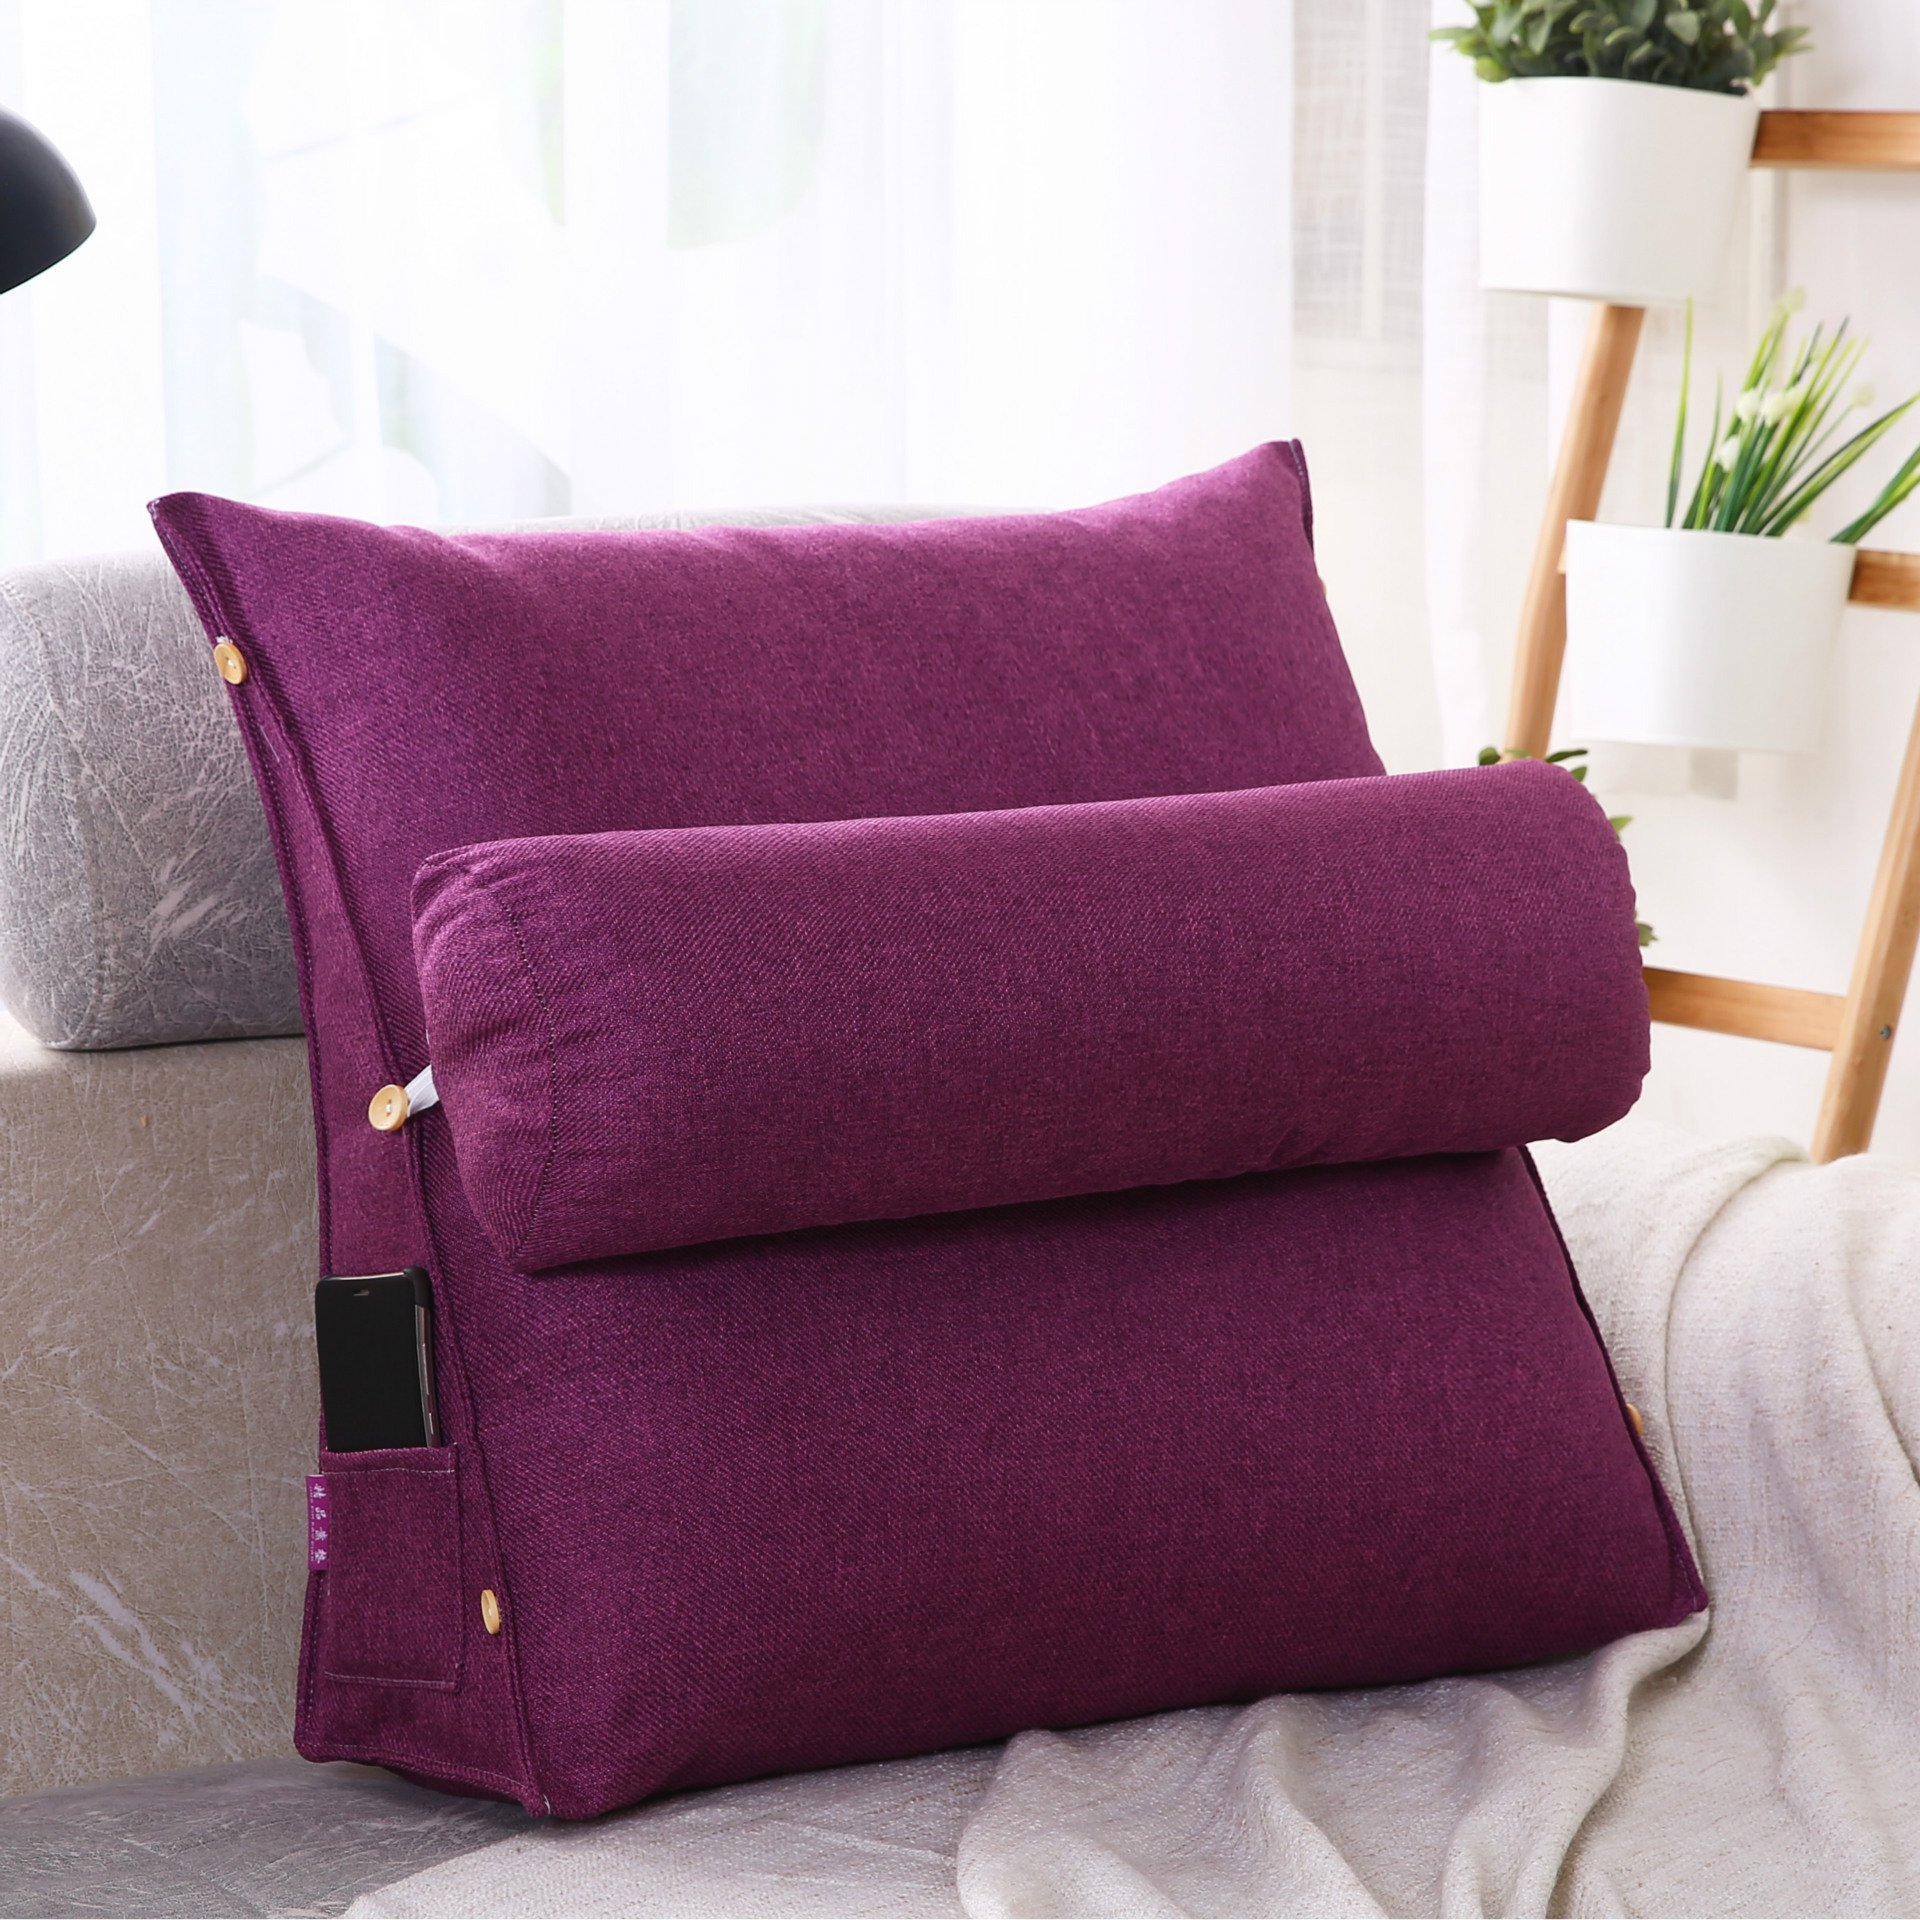 LUOTIANLANG Office sofa cushion pillow waist pillow for pregnant women Home Furnishing ornaments triangle comfortable cushion,Purple,50x200x20cm